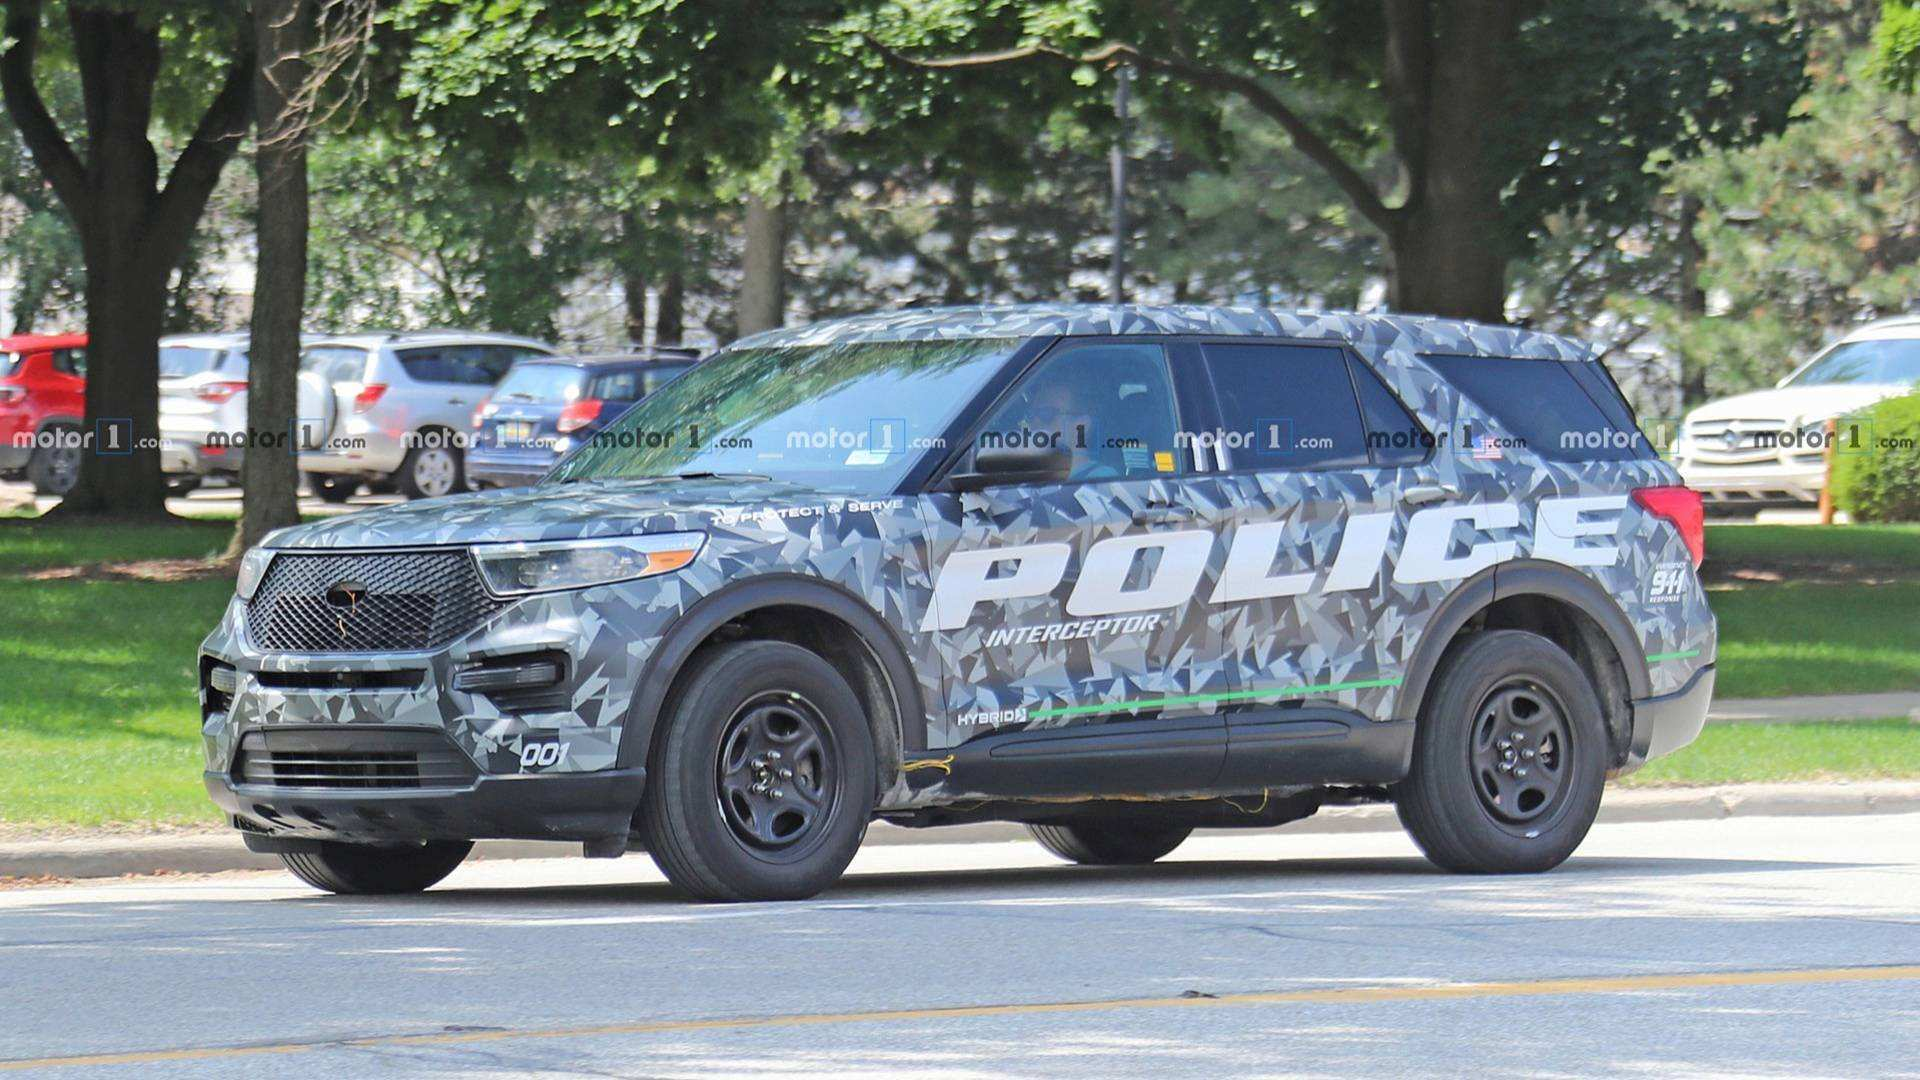 36 All New 2020 Ford Police Utility Pricing for 2020 Ford Police Utility